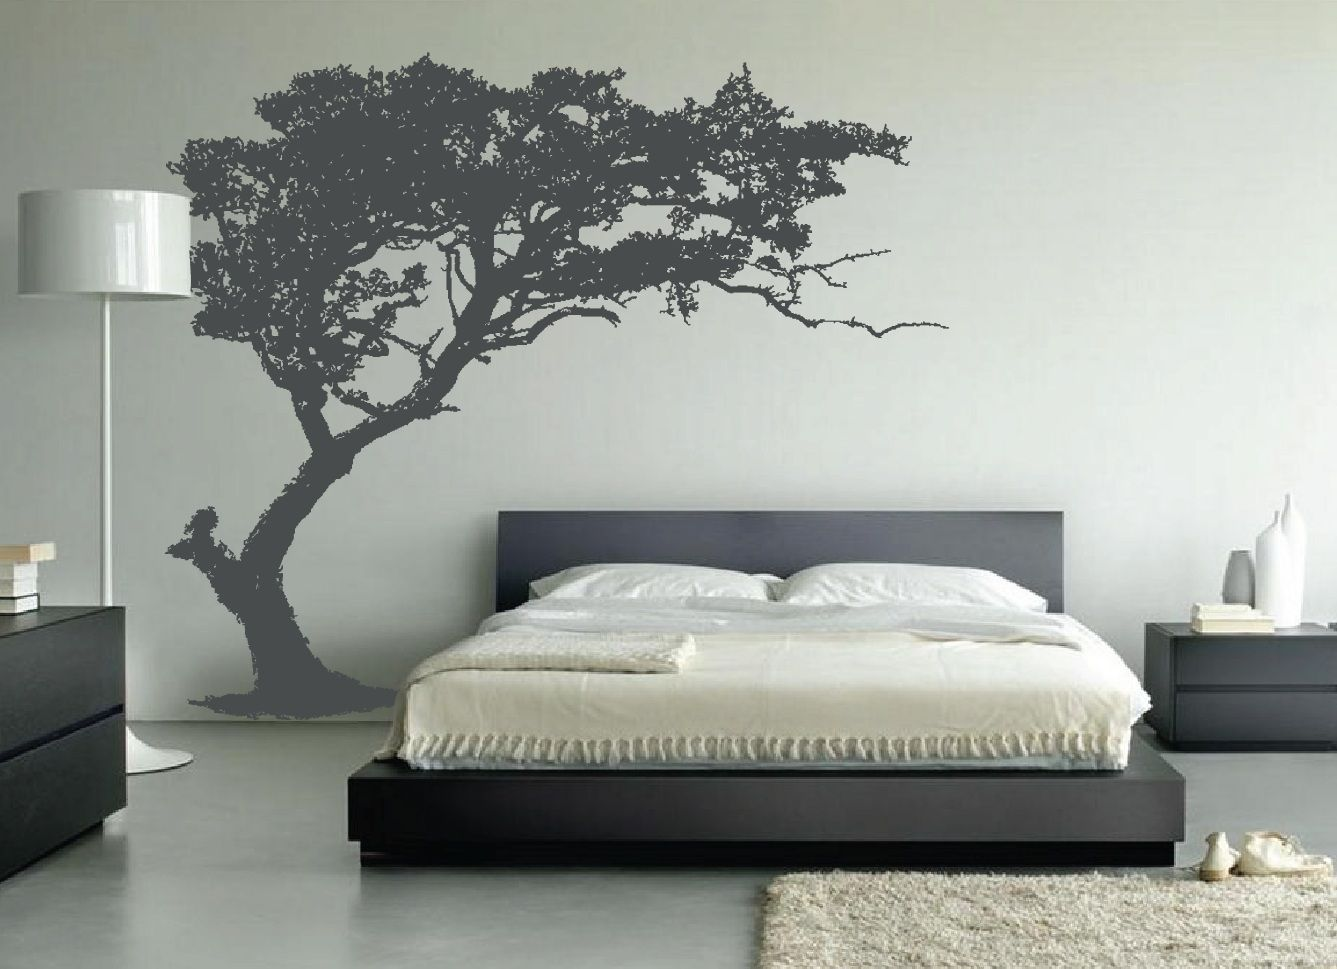 Large wall tree decal forest decor vinyl sticker highly detailed large wall tree decal forest decor vinyl sticker highly detailed removable nursery 1131 amipublicfo Choice Image